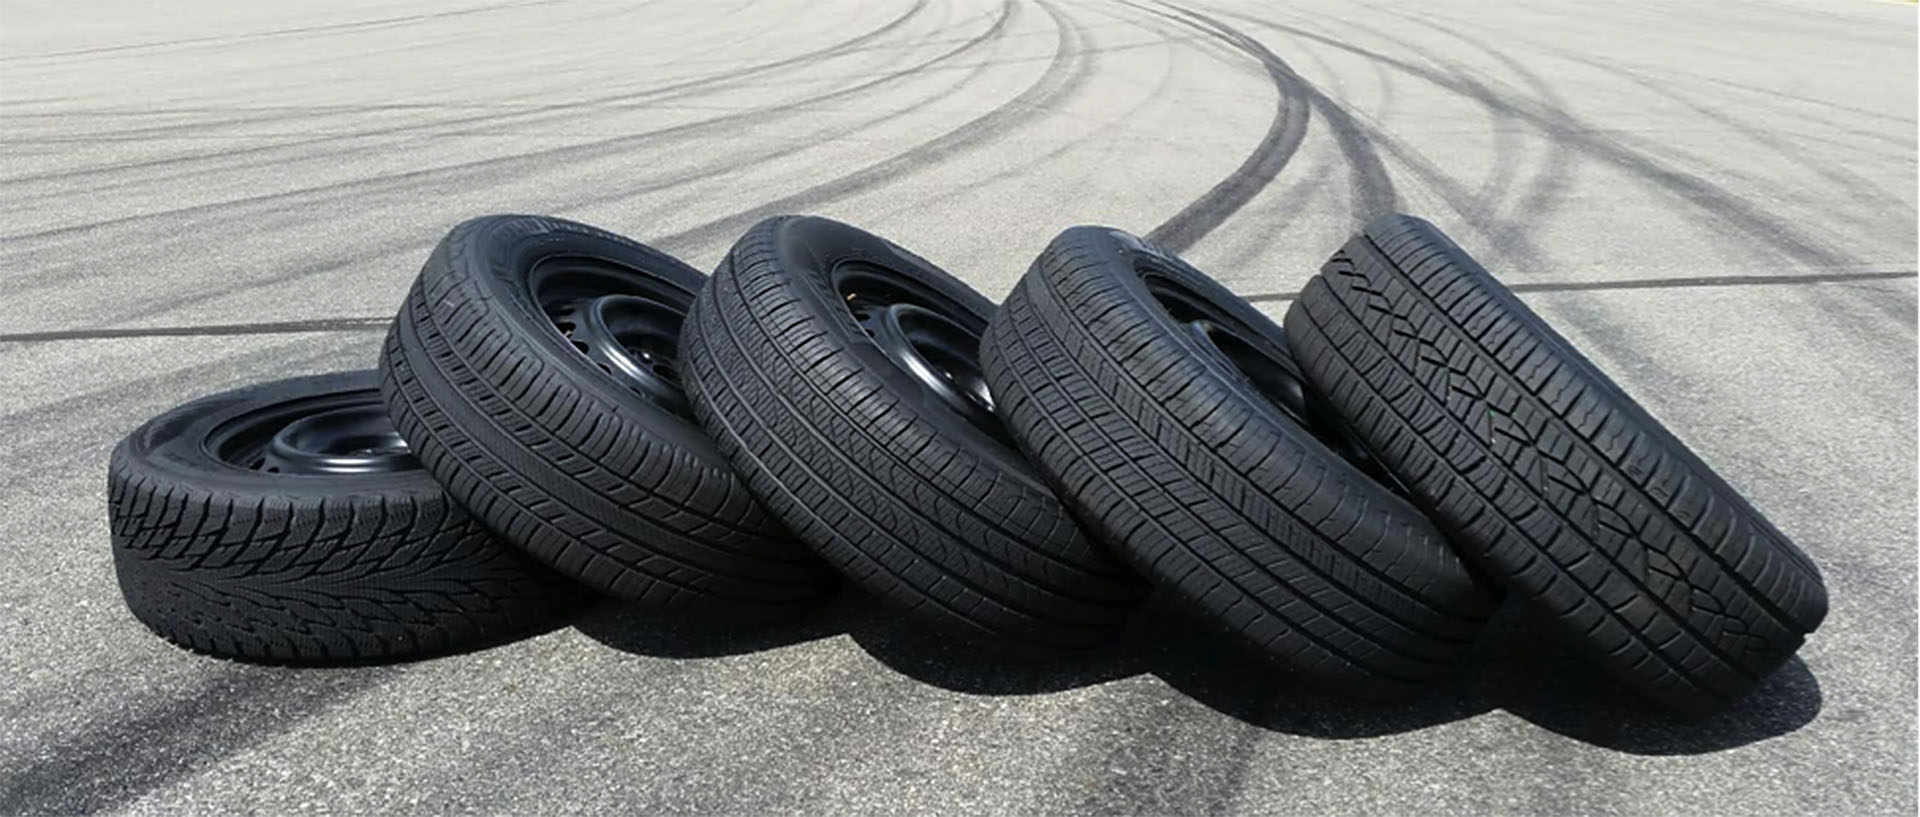 Tire Rack - Your performance experts for tires and wheels